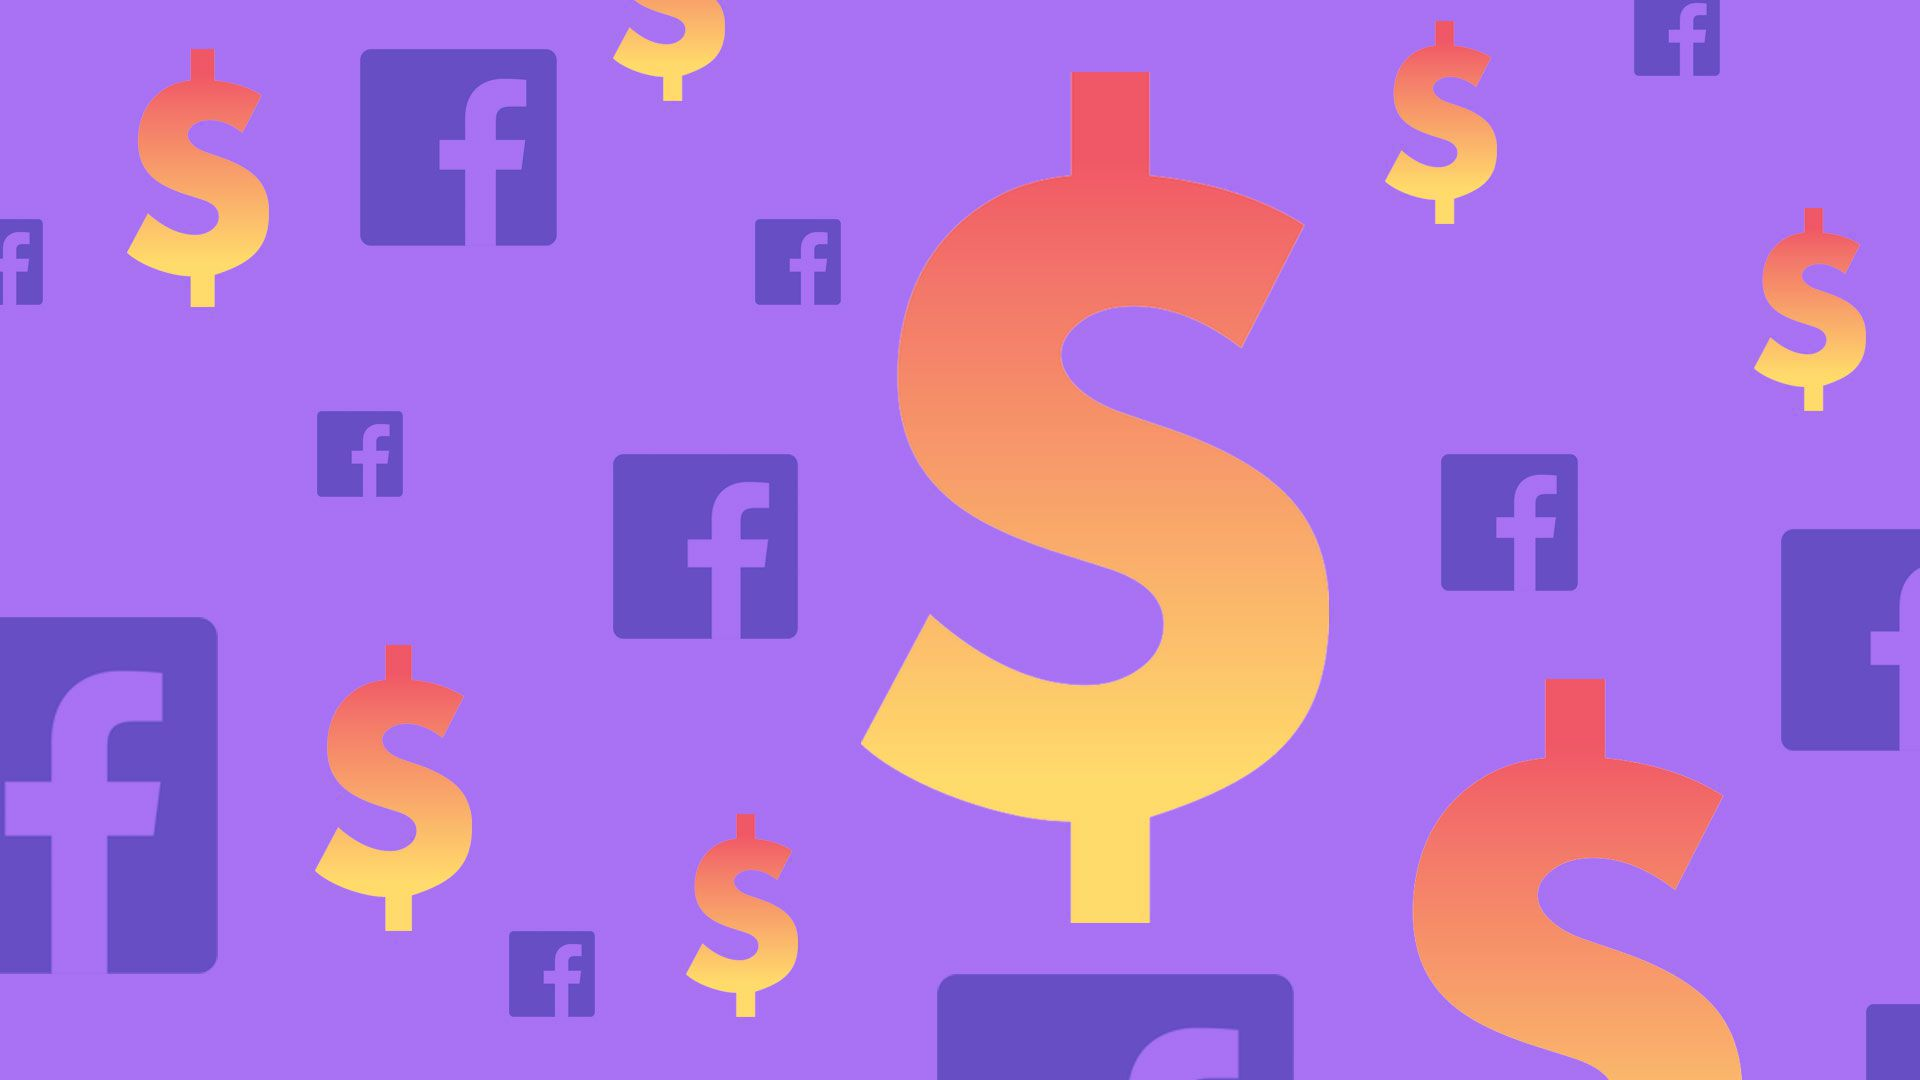 An illustration of the Facebook logo and dollar signs against a purple background